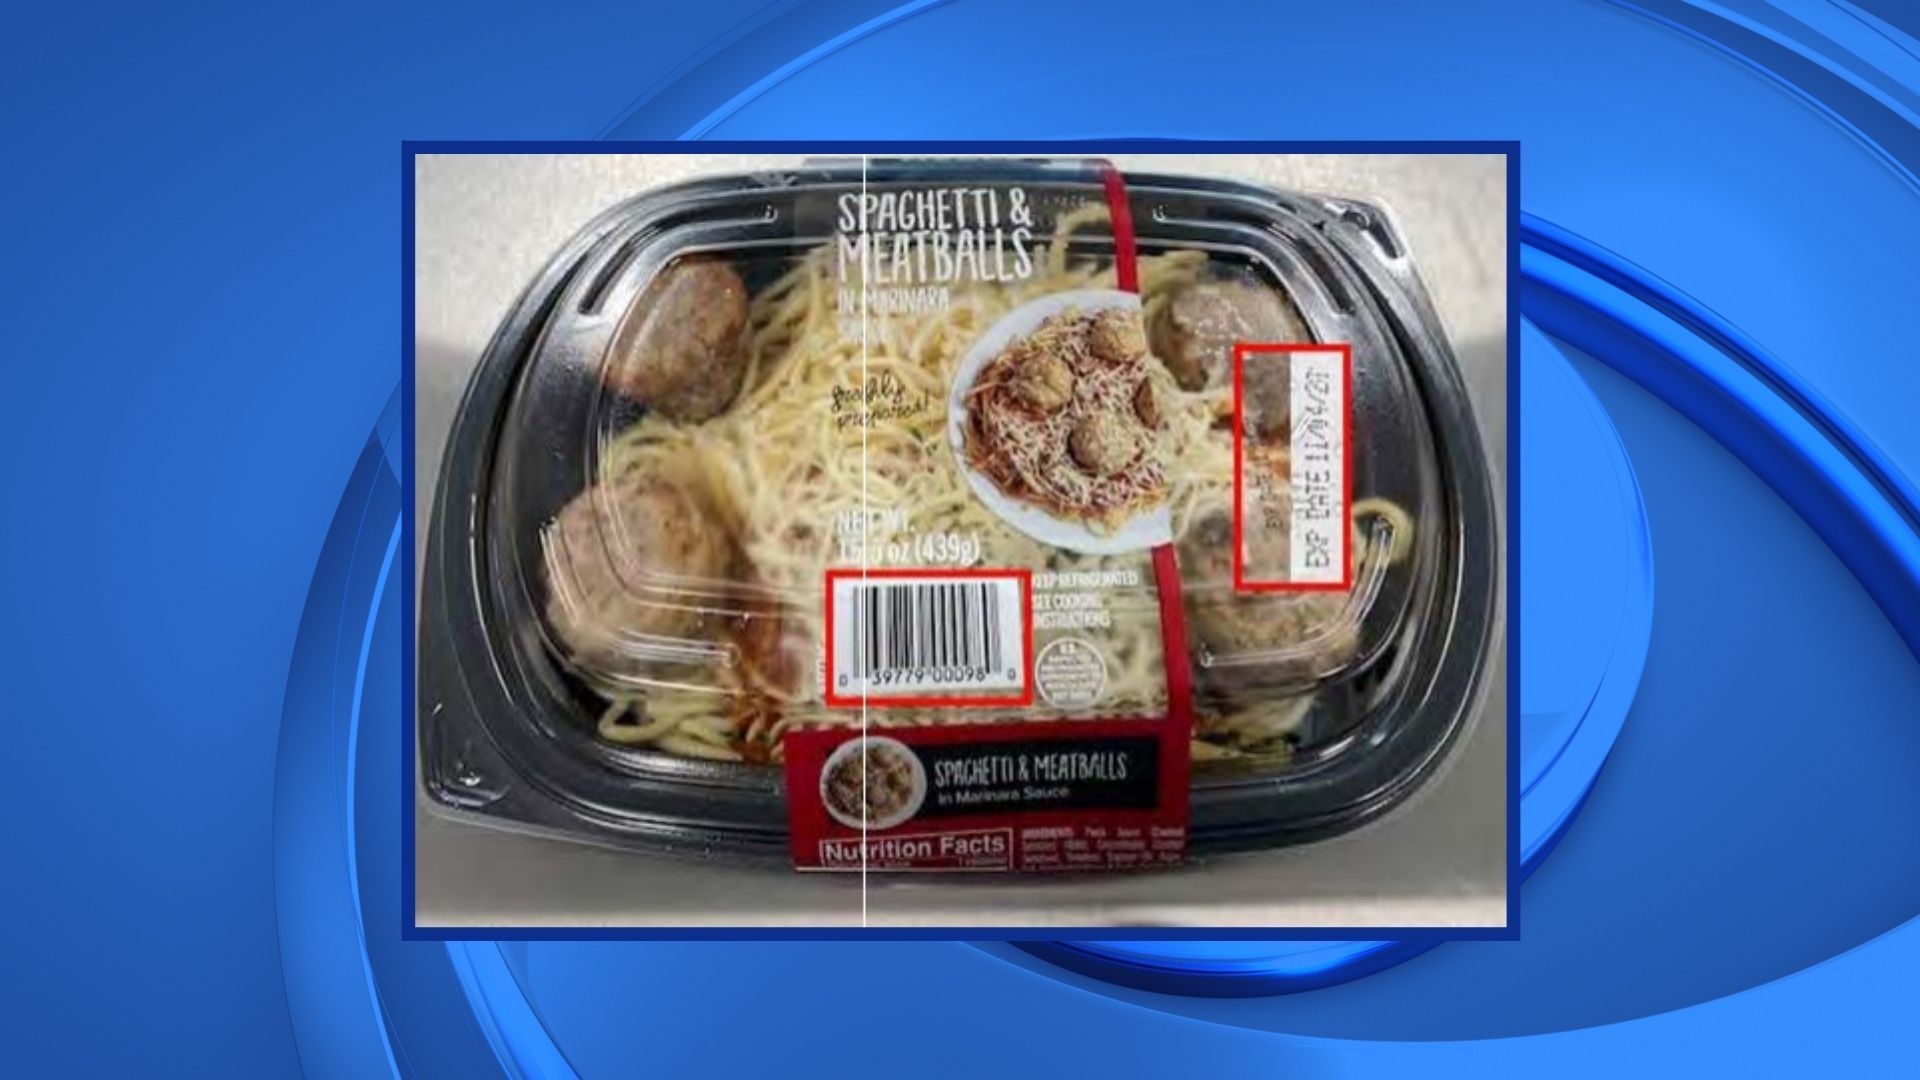 Health Alert Issued For Spaghetti And Meatballs Meals Sold At Kwik Trip Locations Wfrv Local 5 Green Bay Appleton